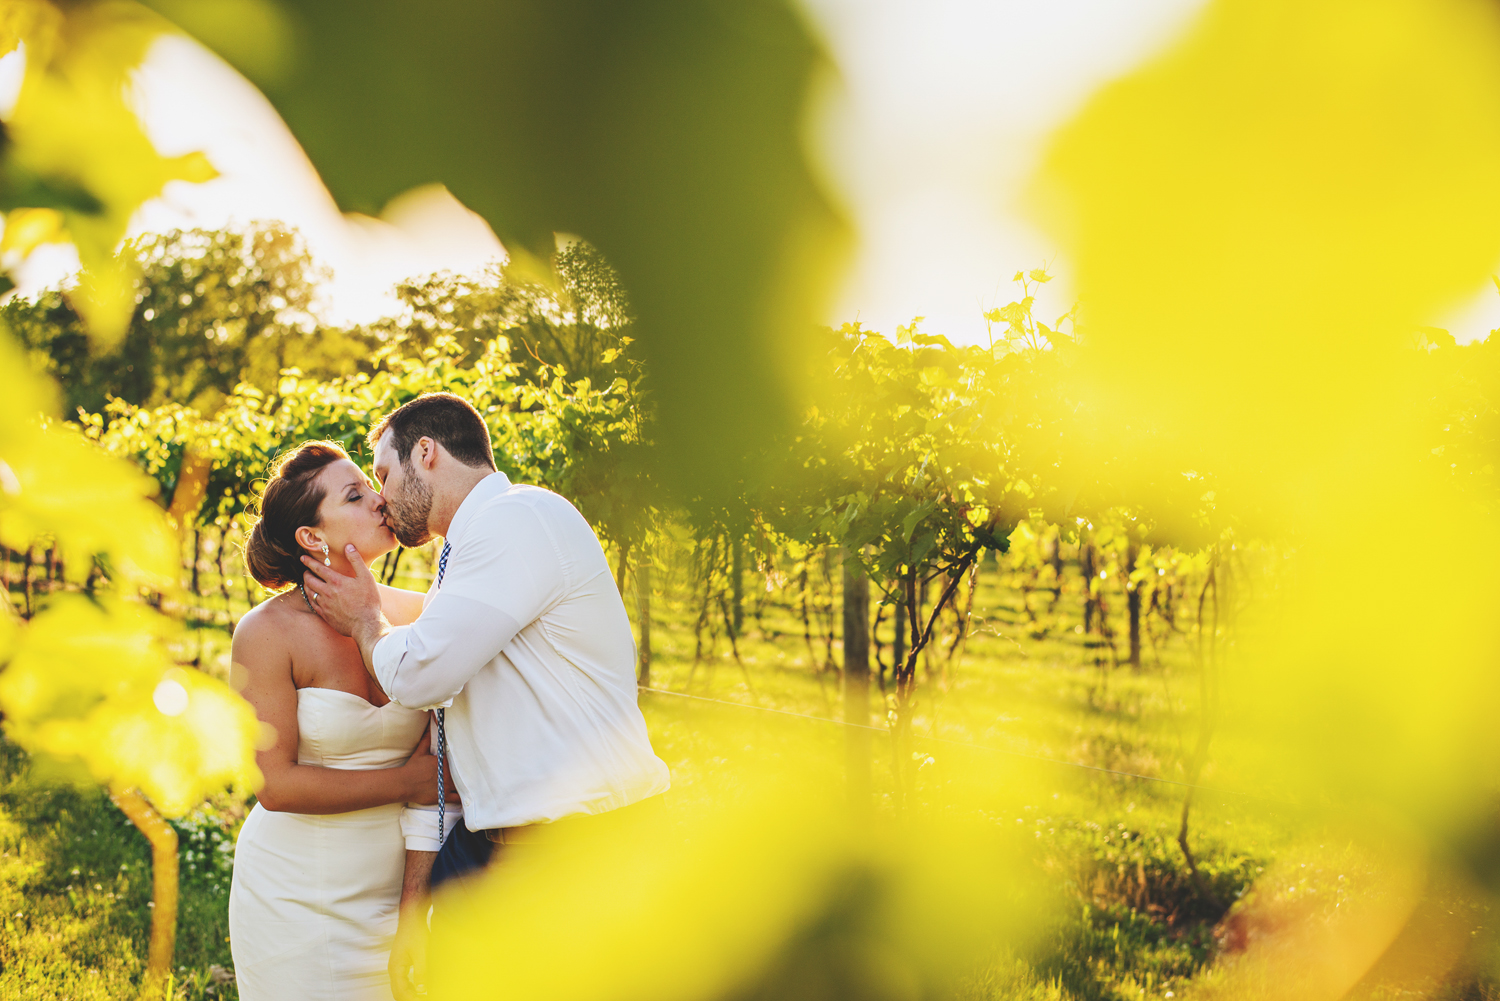 michigan_vineyard_wedding_photographer_davetree_photography_351.jpg